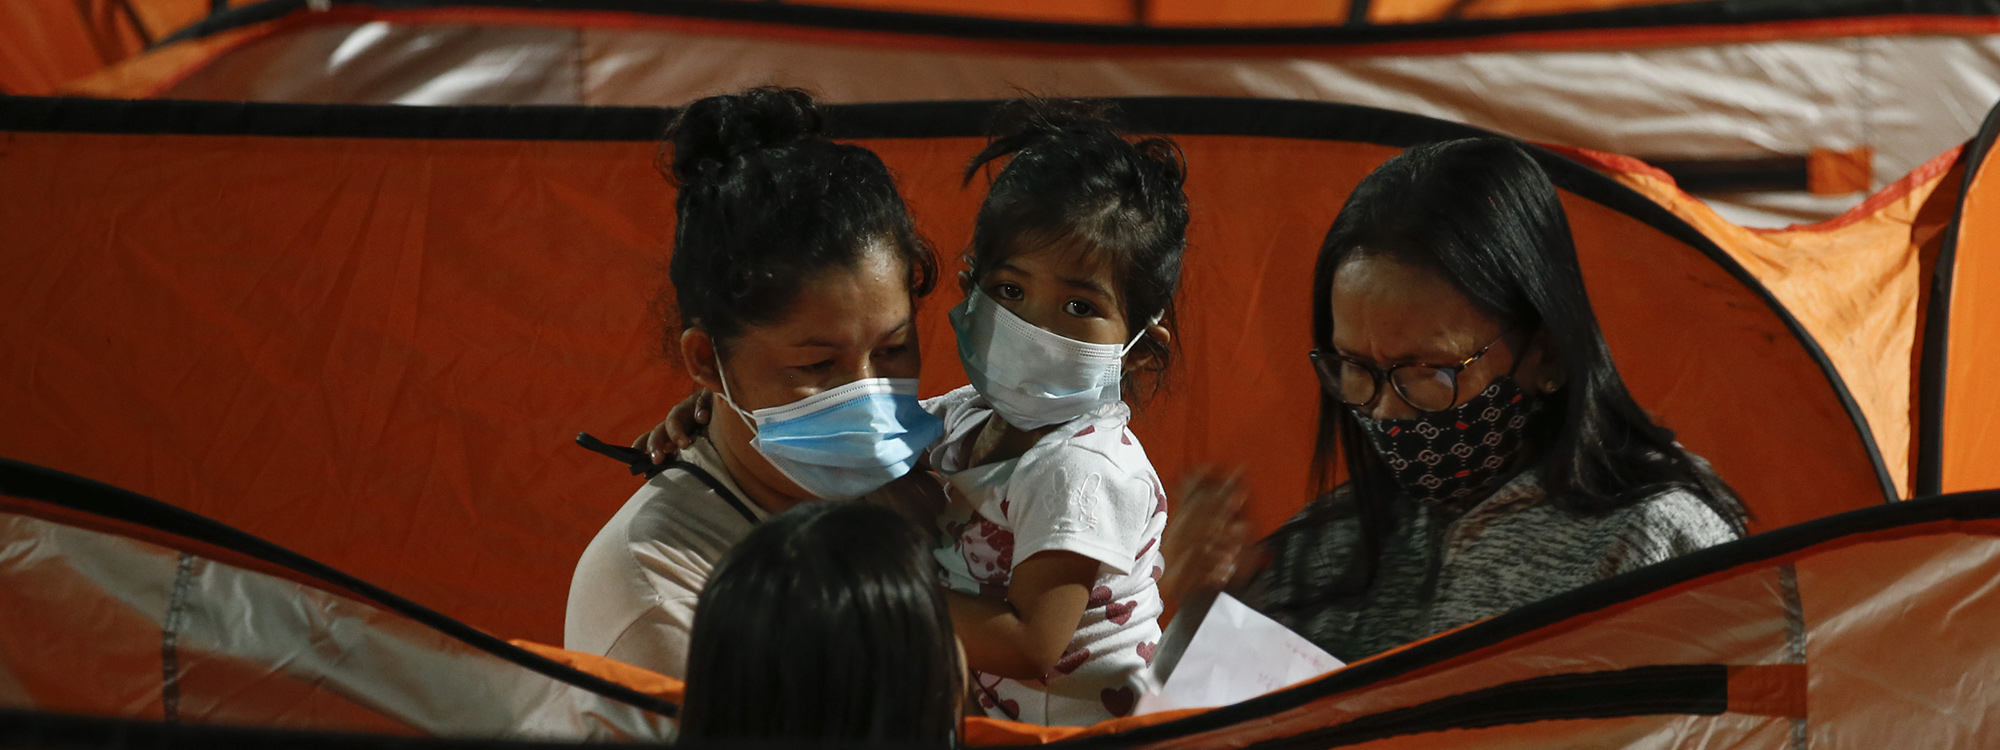 Wearing masks in the Philippines after typhoon Goni